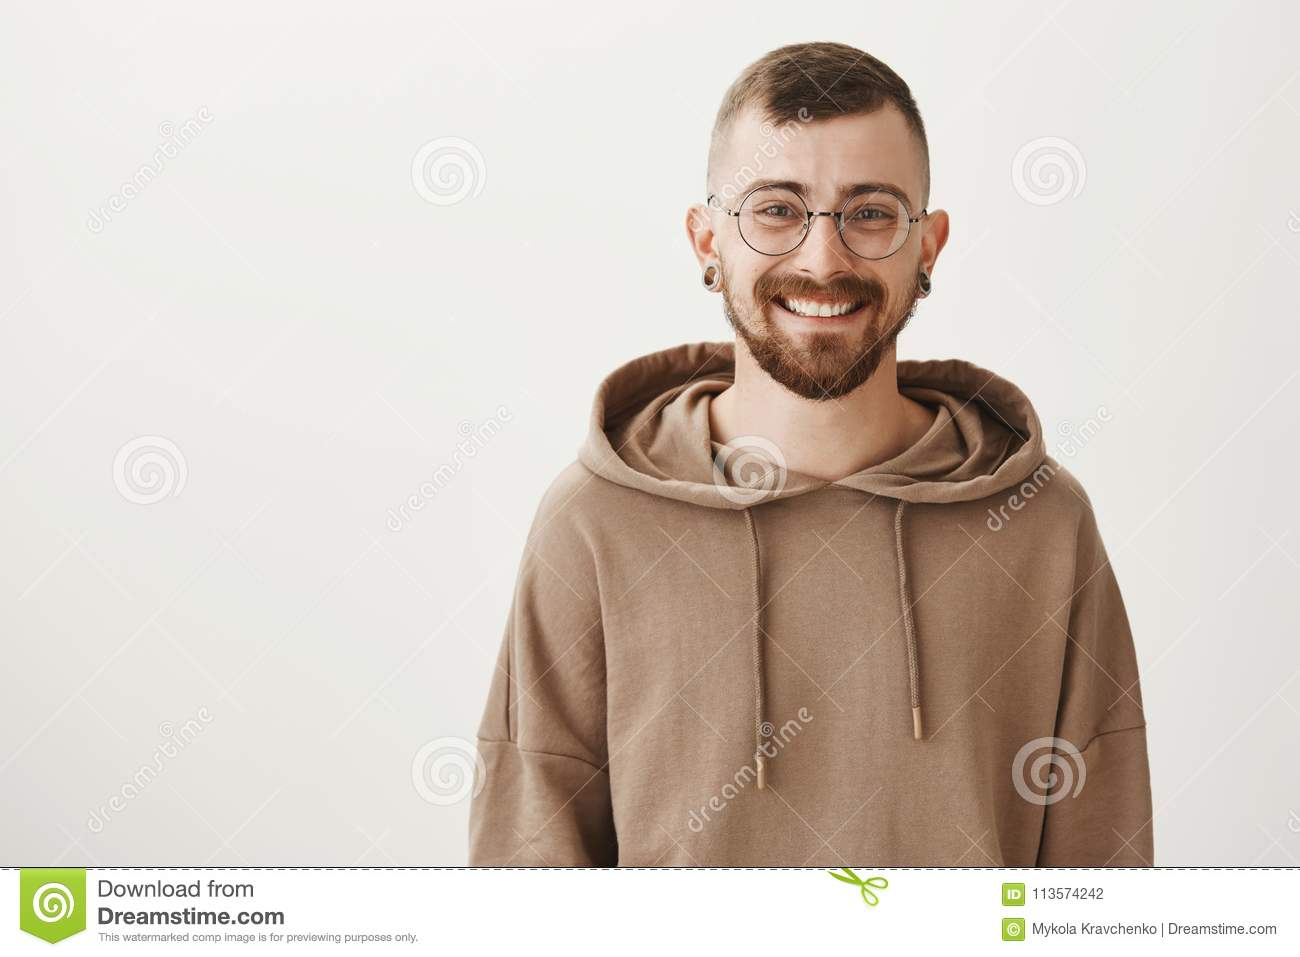 Waist-up indoor shot of friendly handsome hipster guy with trendy haircut and glasses smiling cheerfully while standing